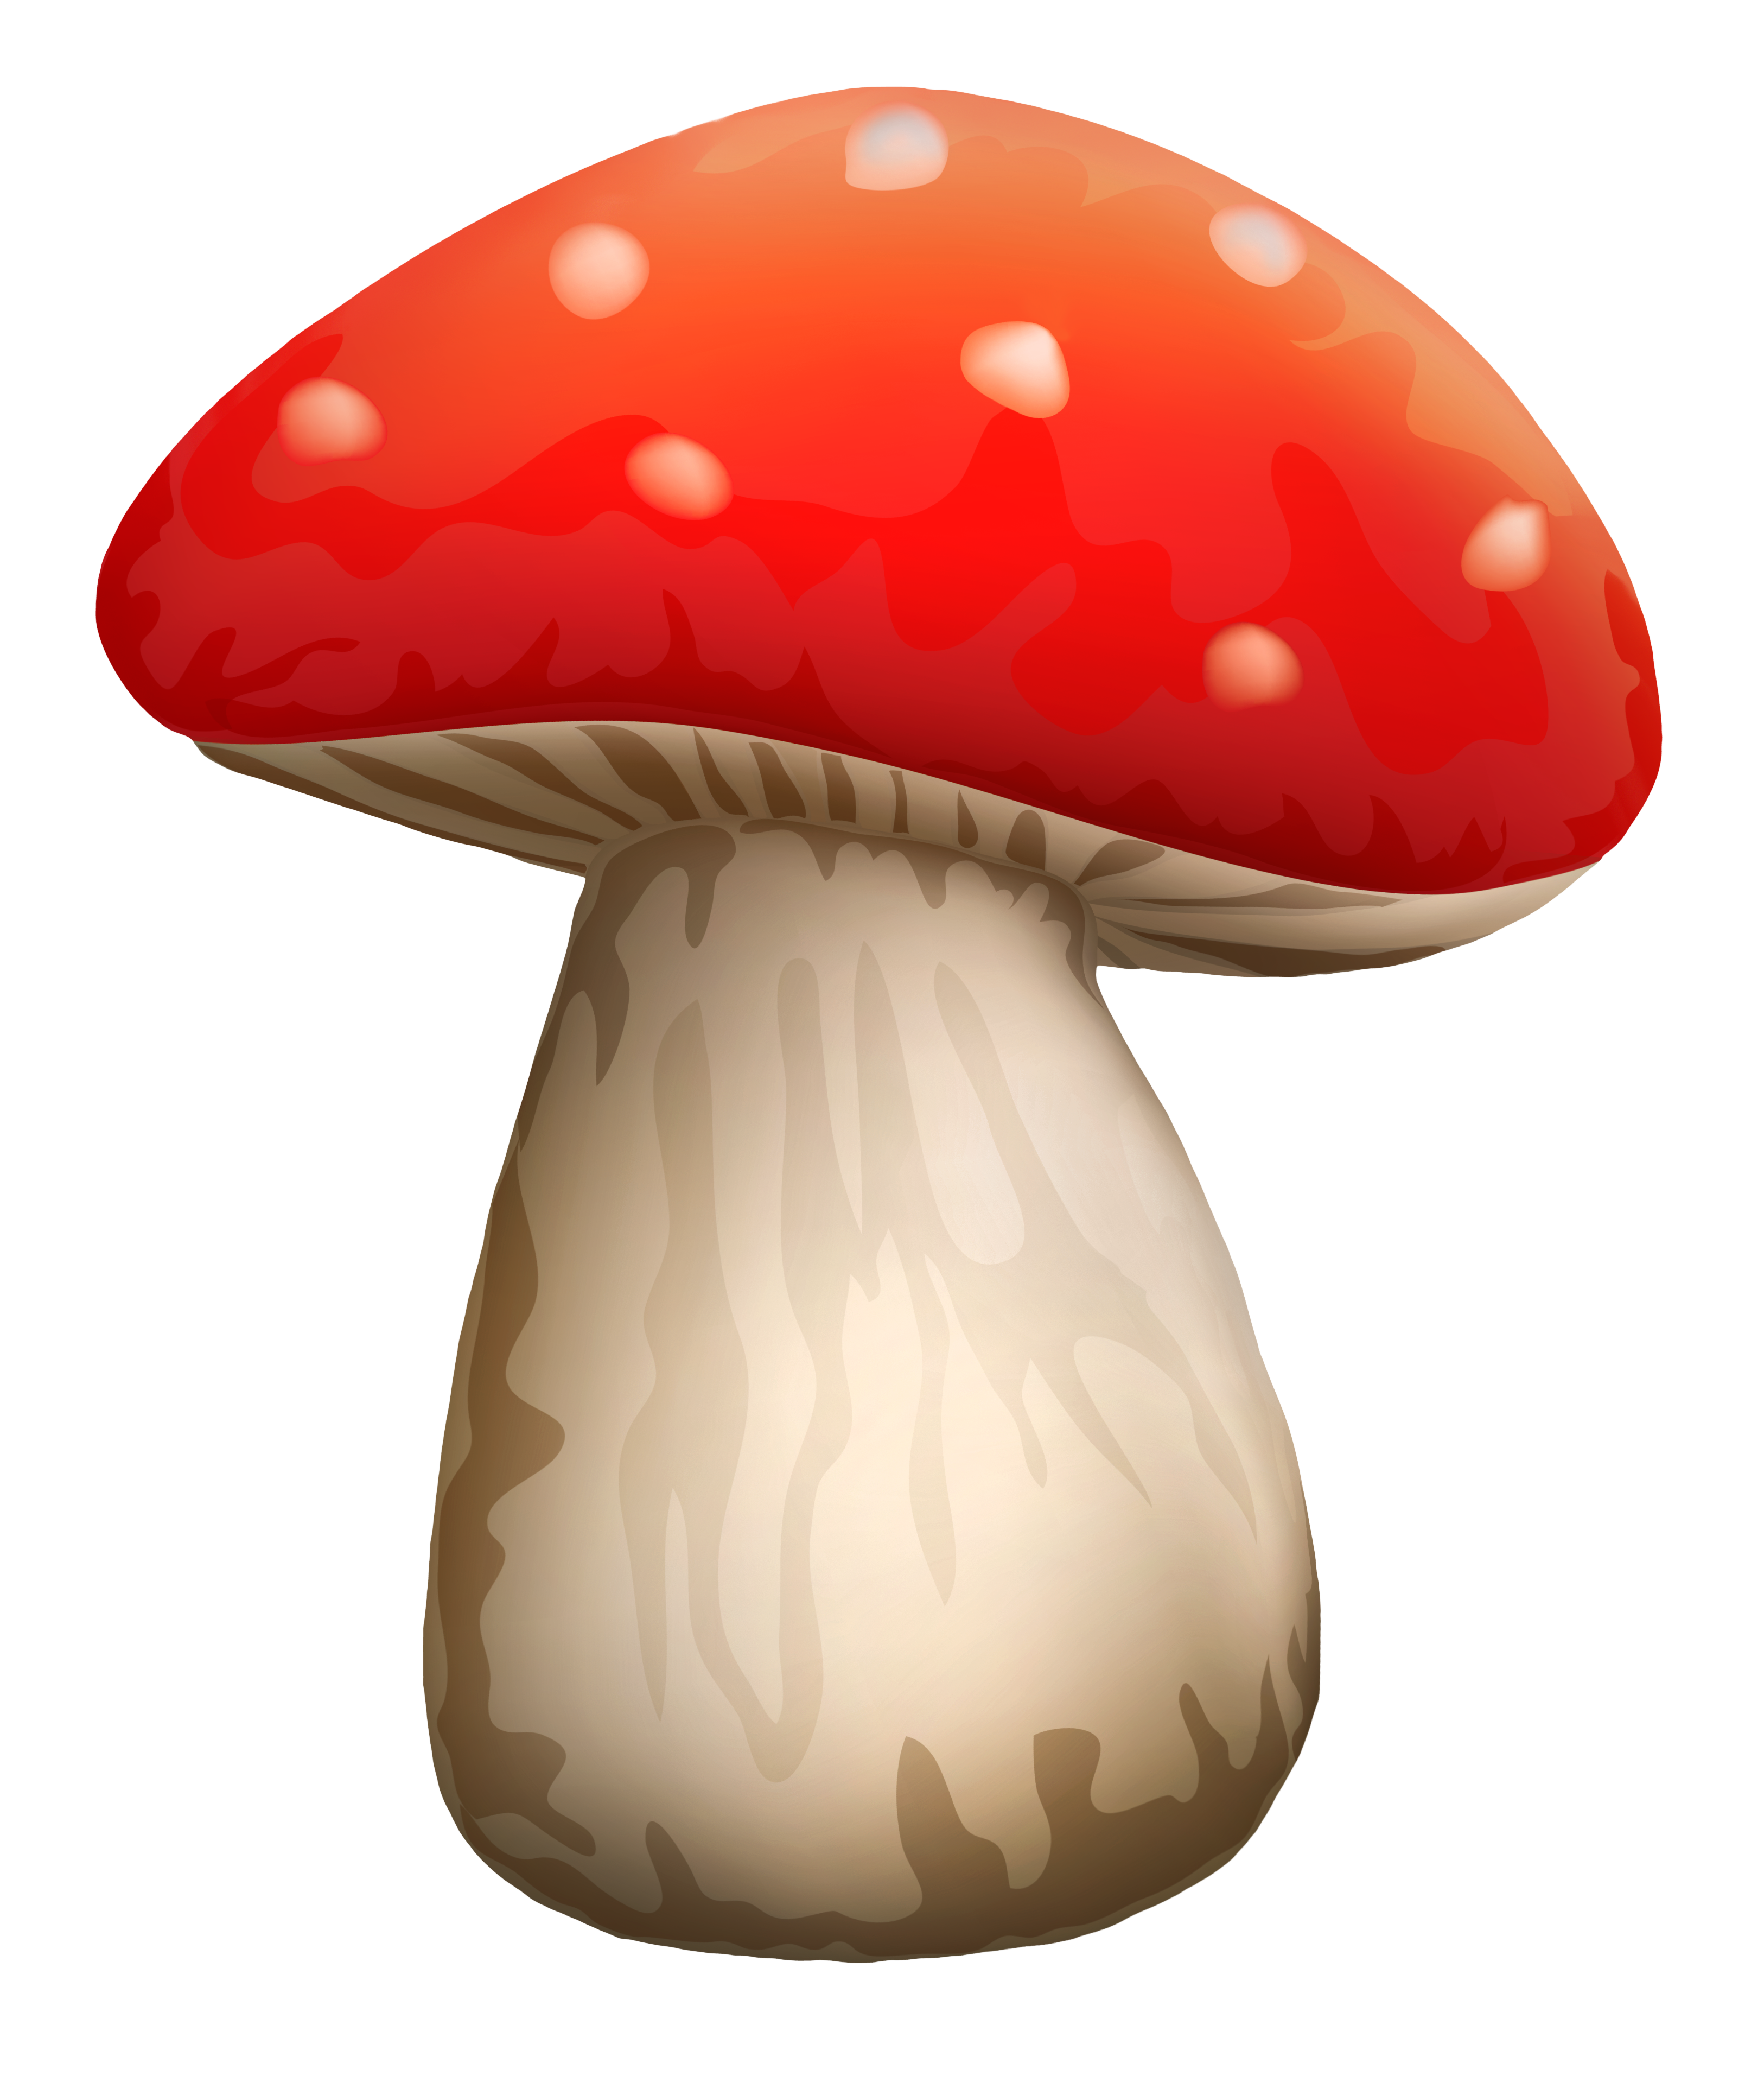 picture black and white Mushroom clipart agaricus. Poisonous red with white.